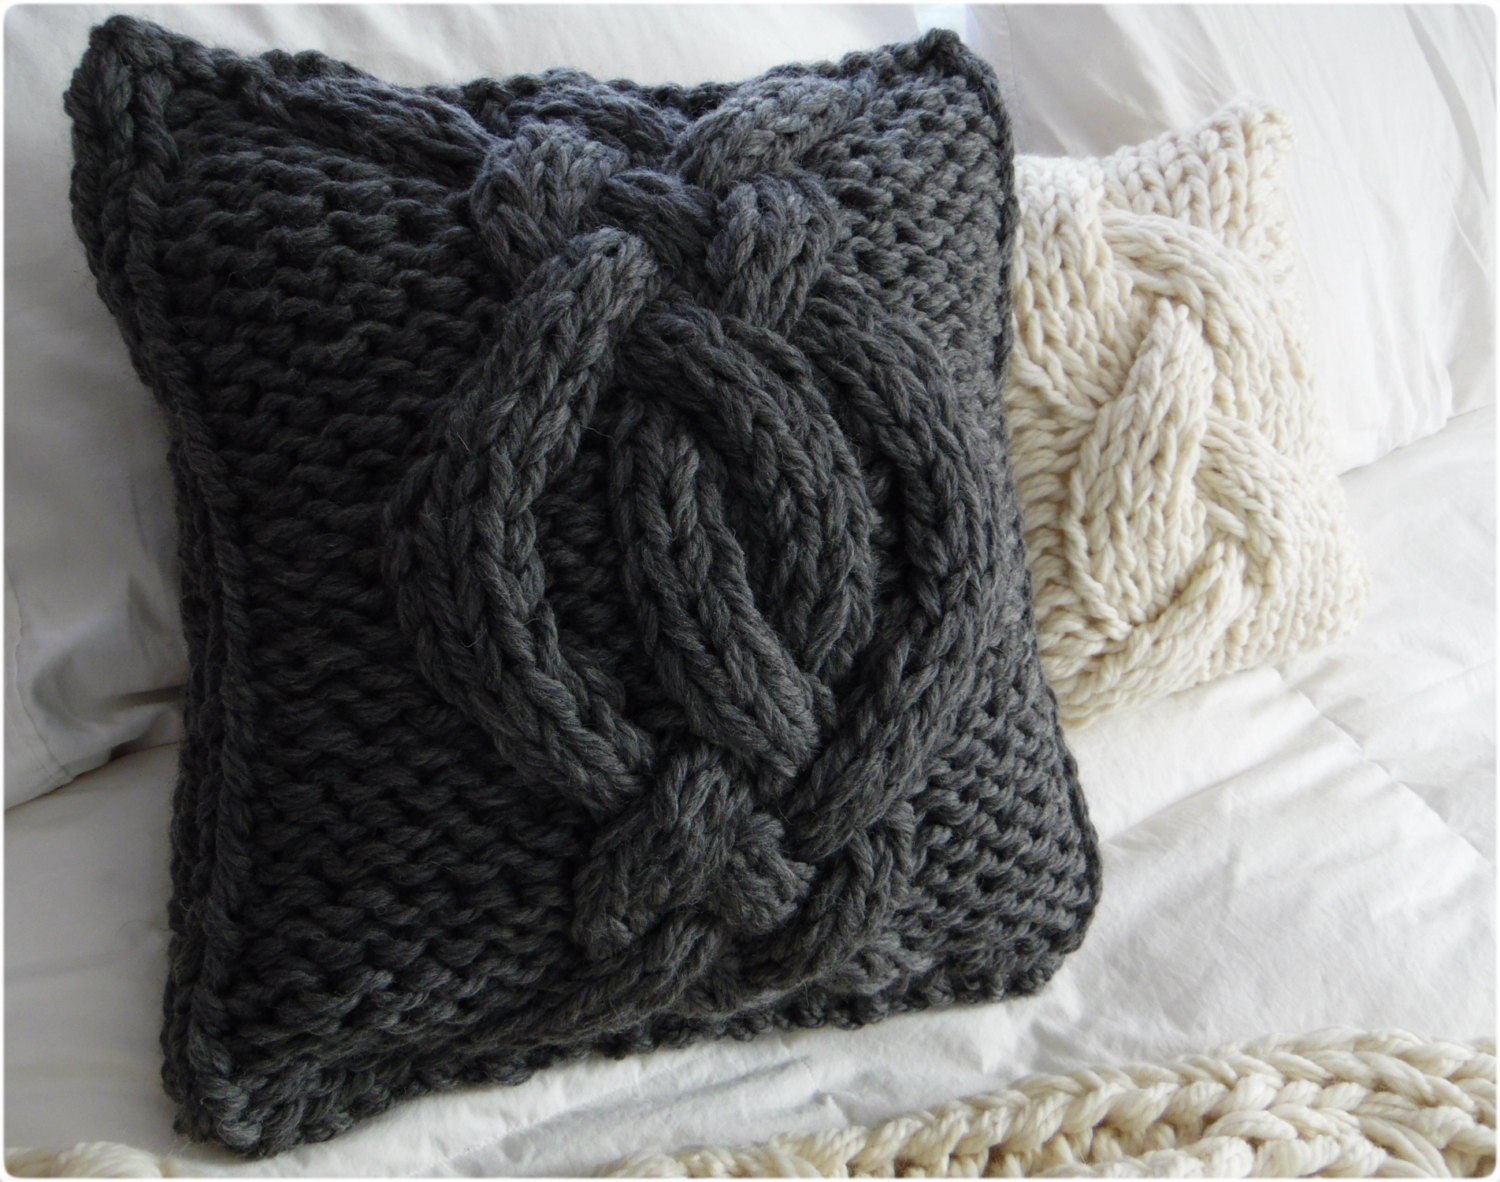 Knitting Pillows : Made to order twisted cable knit pillow